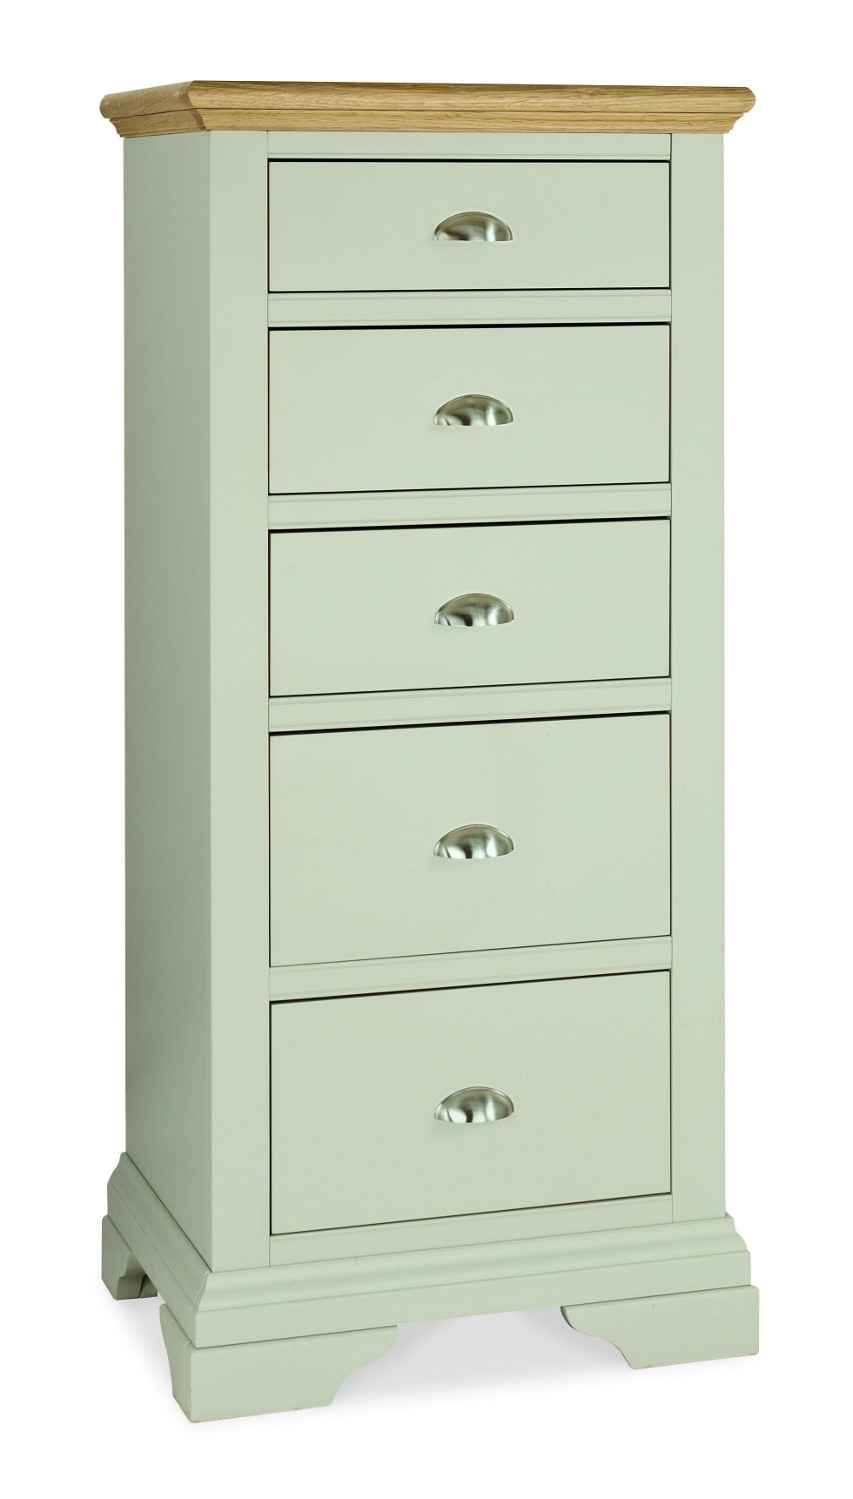 Hampstead Soft Grey and Oak 5 Drawer Tall Chest (Hampstead Soft Grey and Oak 5 Drawer Tall Chest)